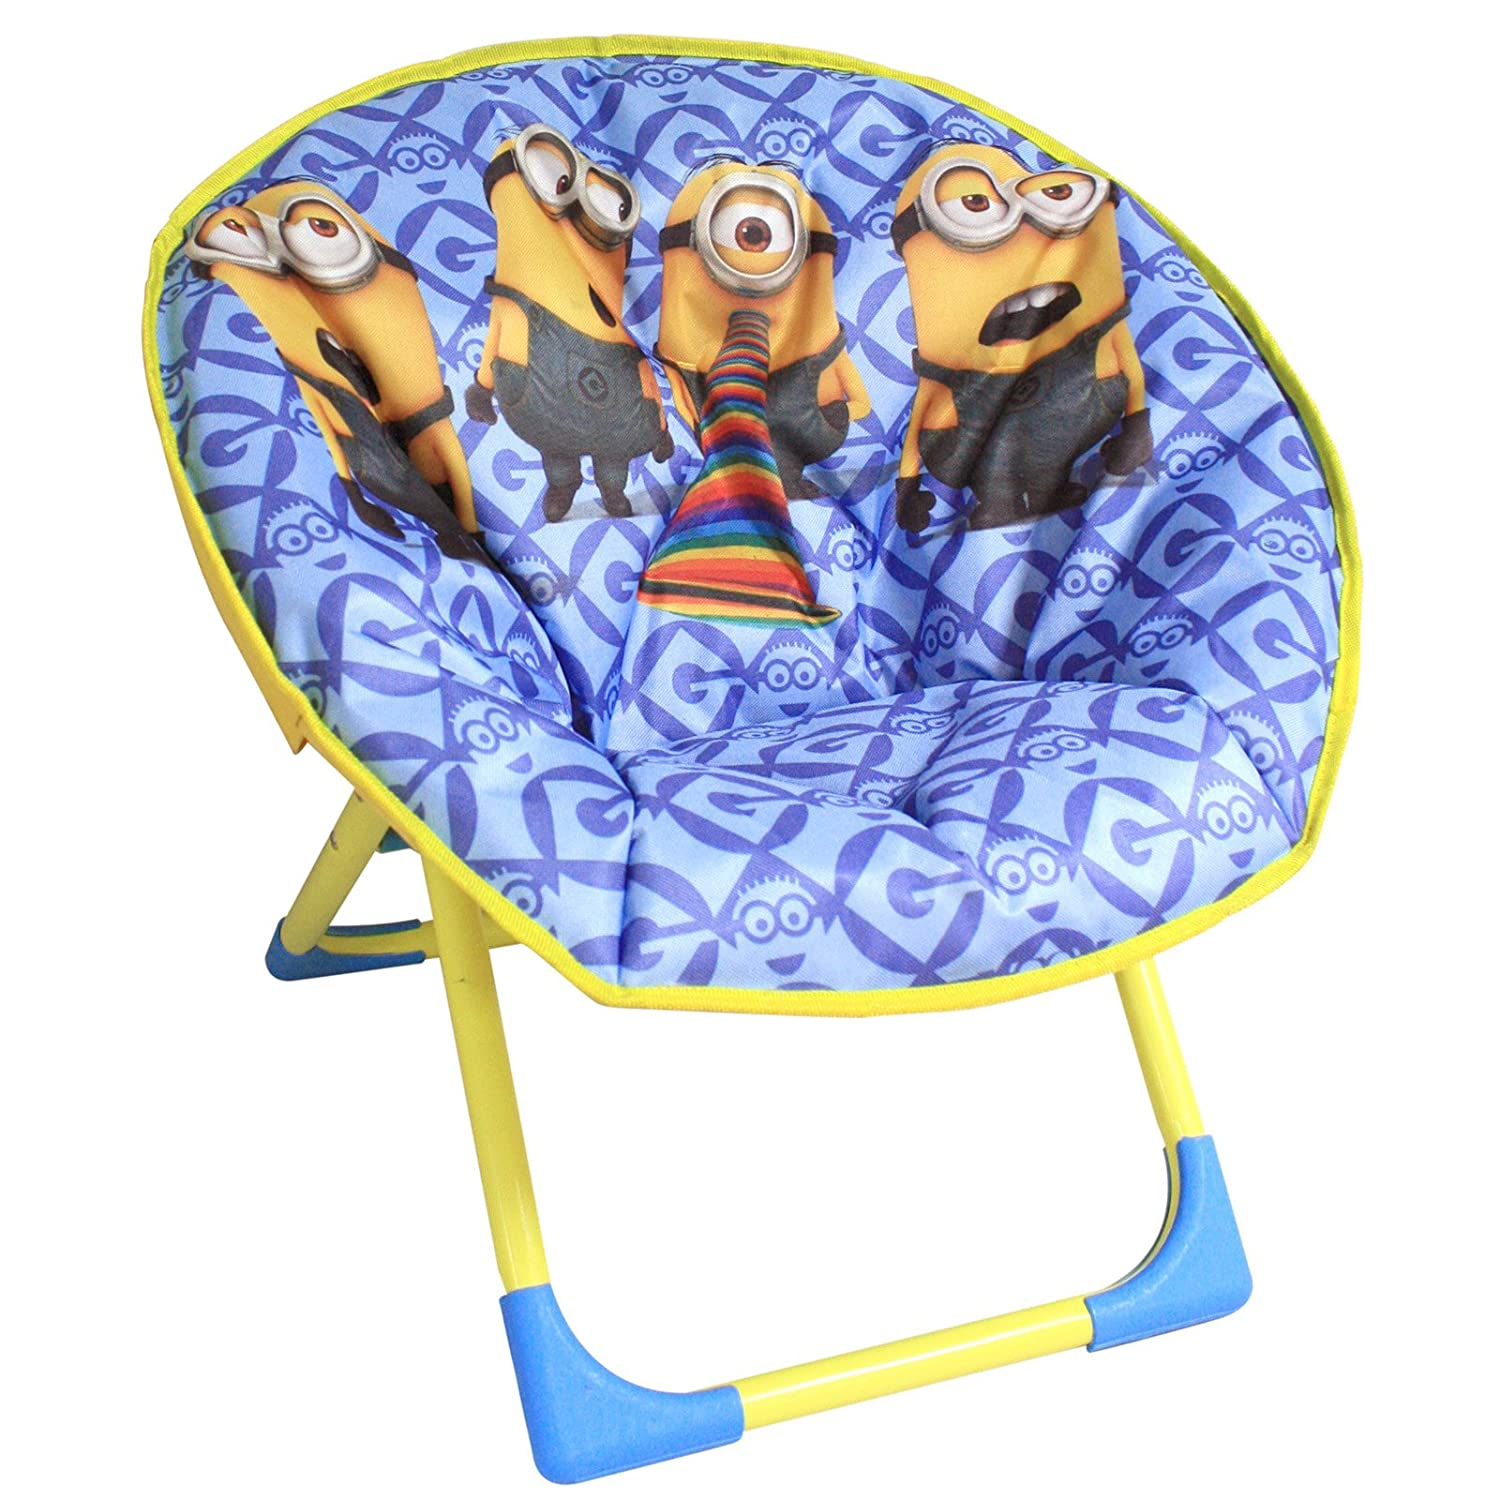 Childs ficial Despicable Me Minions New Kids Cushioned Folding